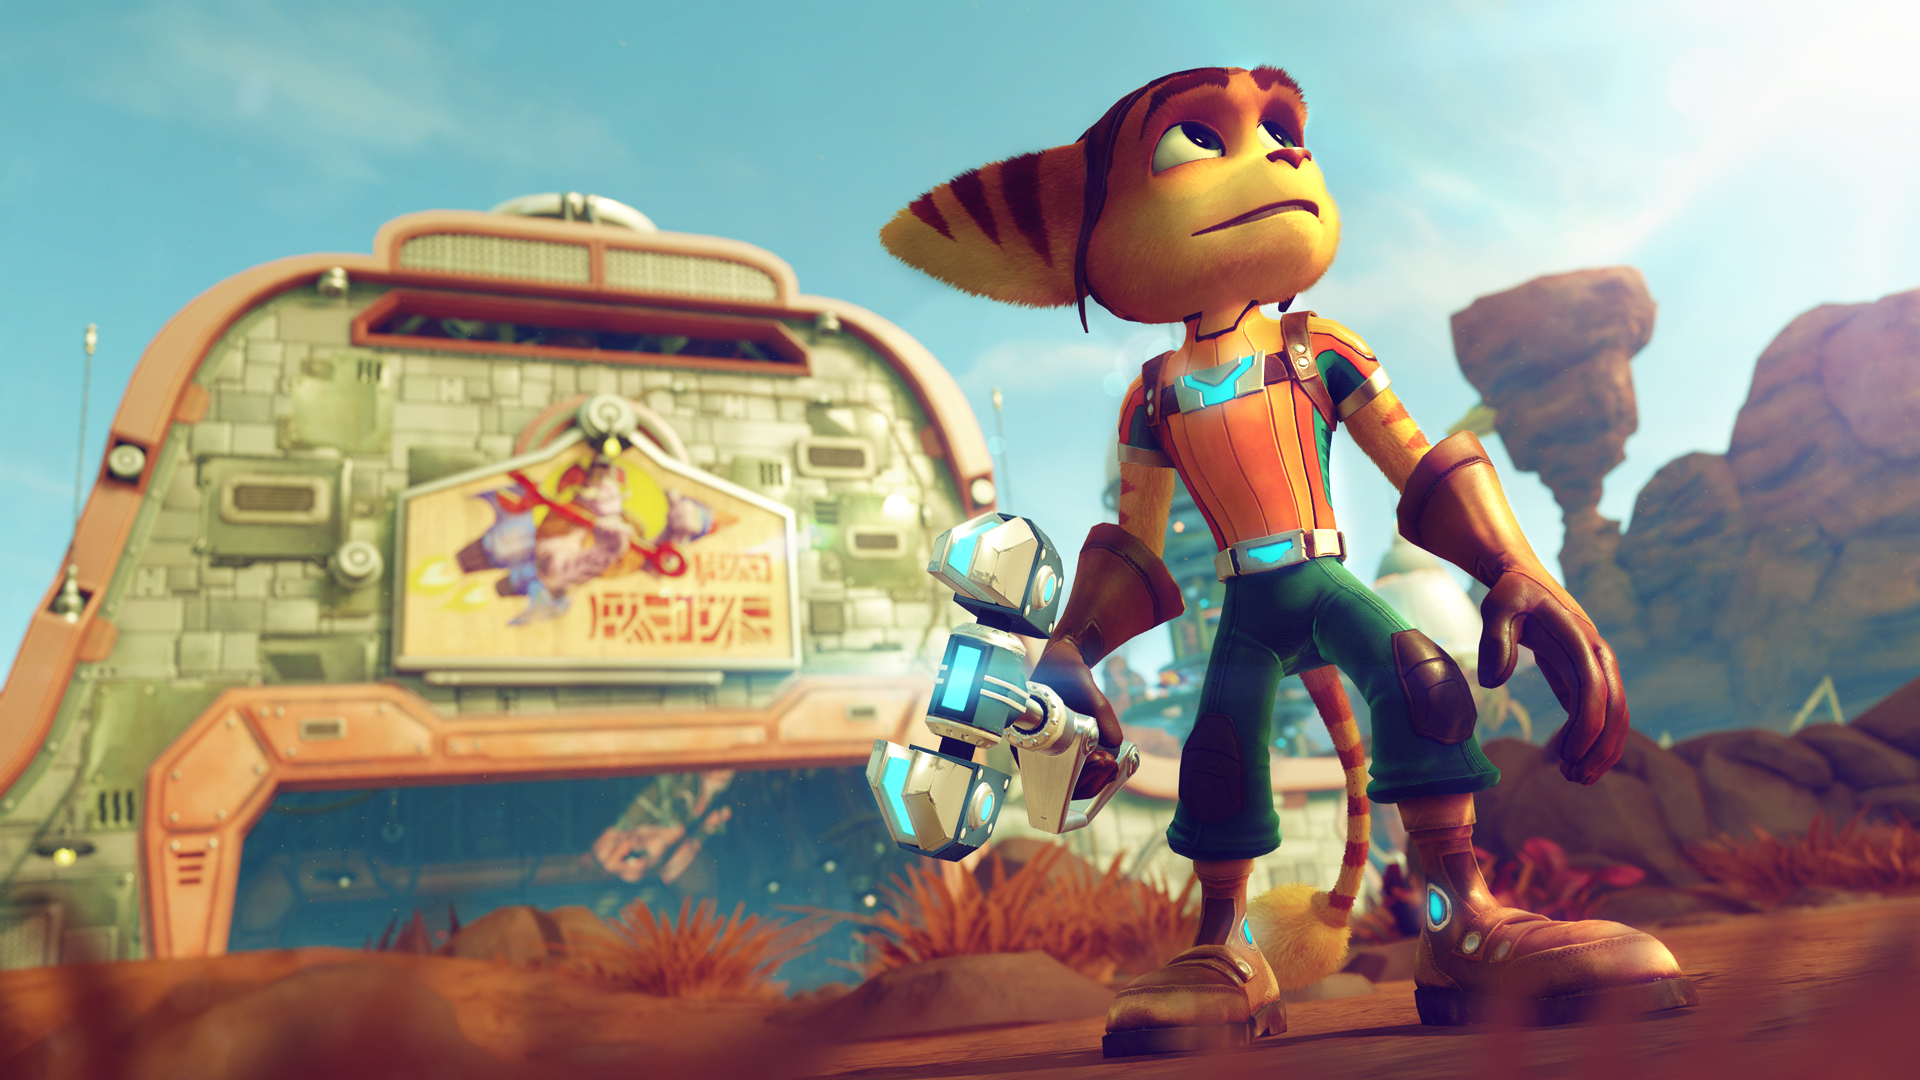 Ratchet & Clank - now that's a remake